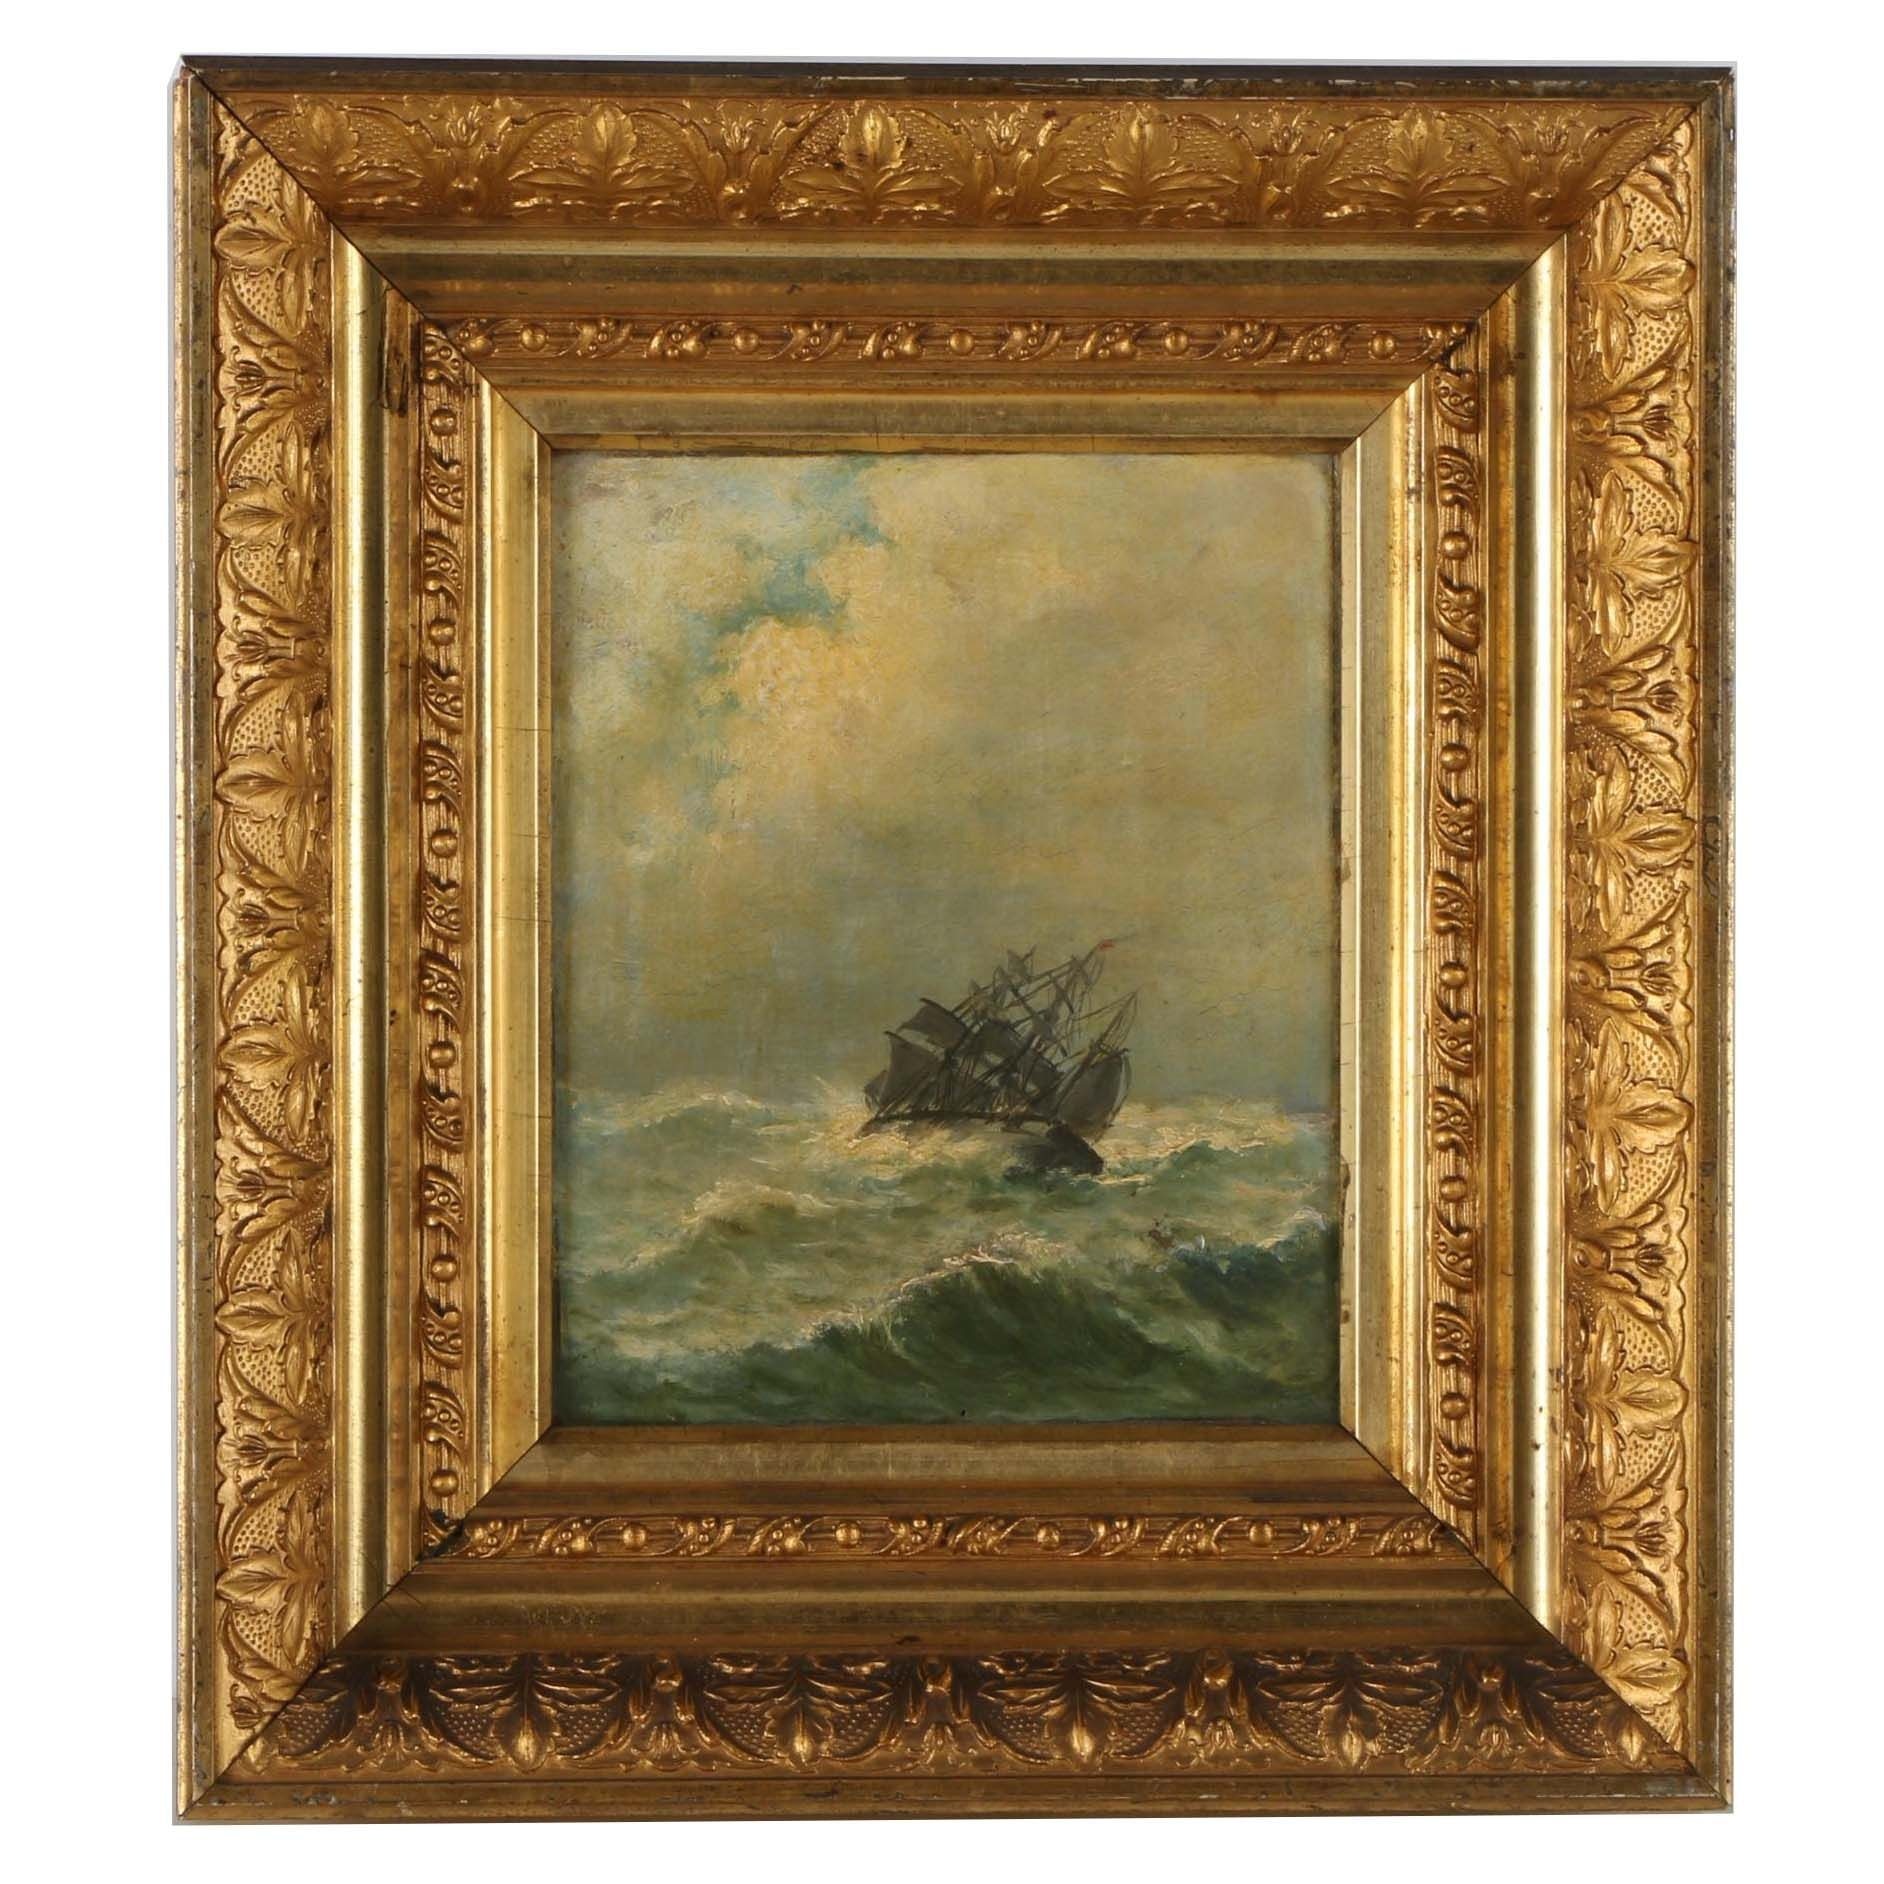 Antique Oil Painting on Board of Ship Navigating Stormy Waters